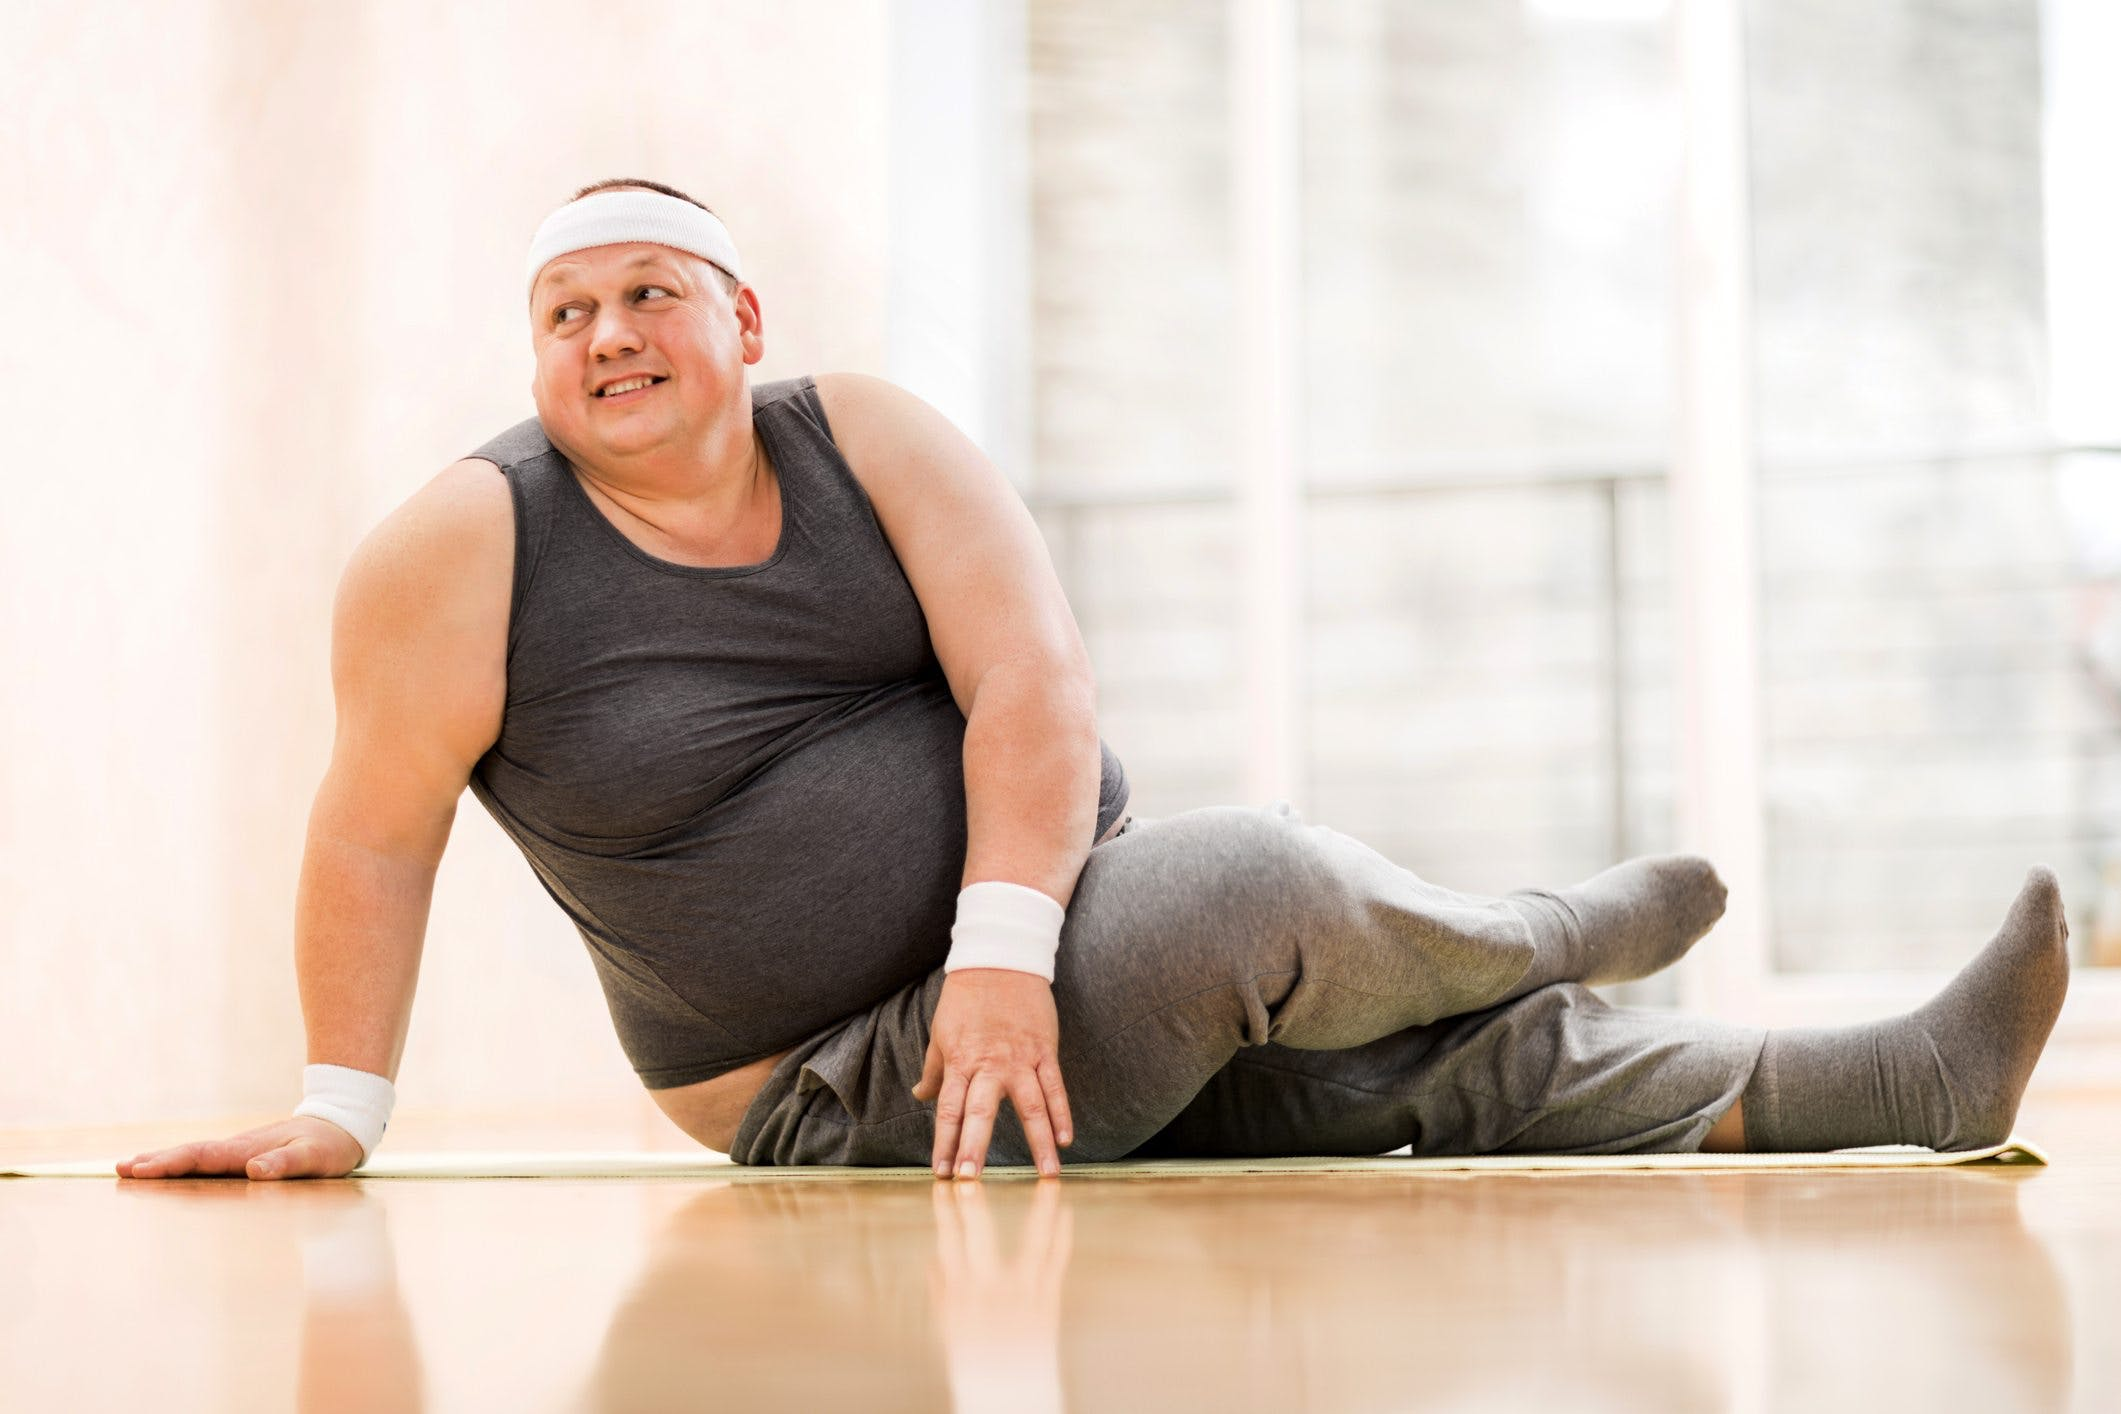 Smiling fat man stretching on the floor.